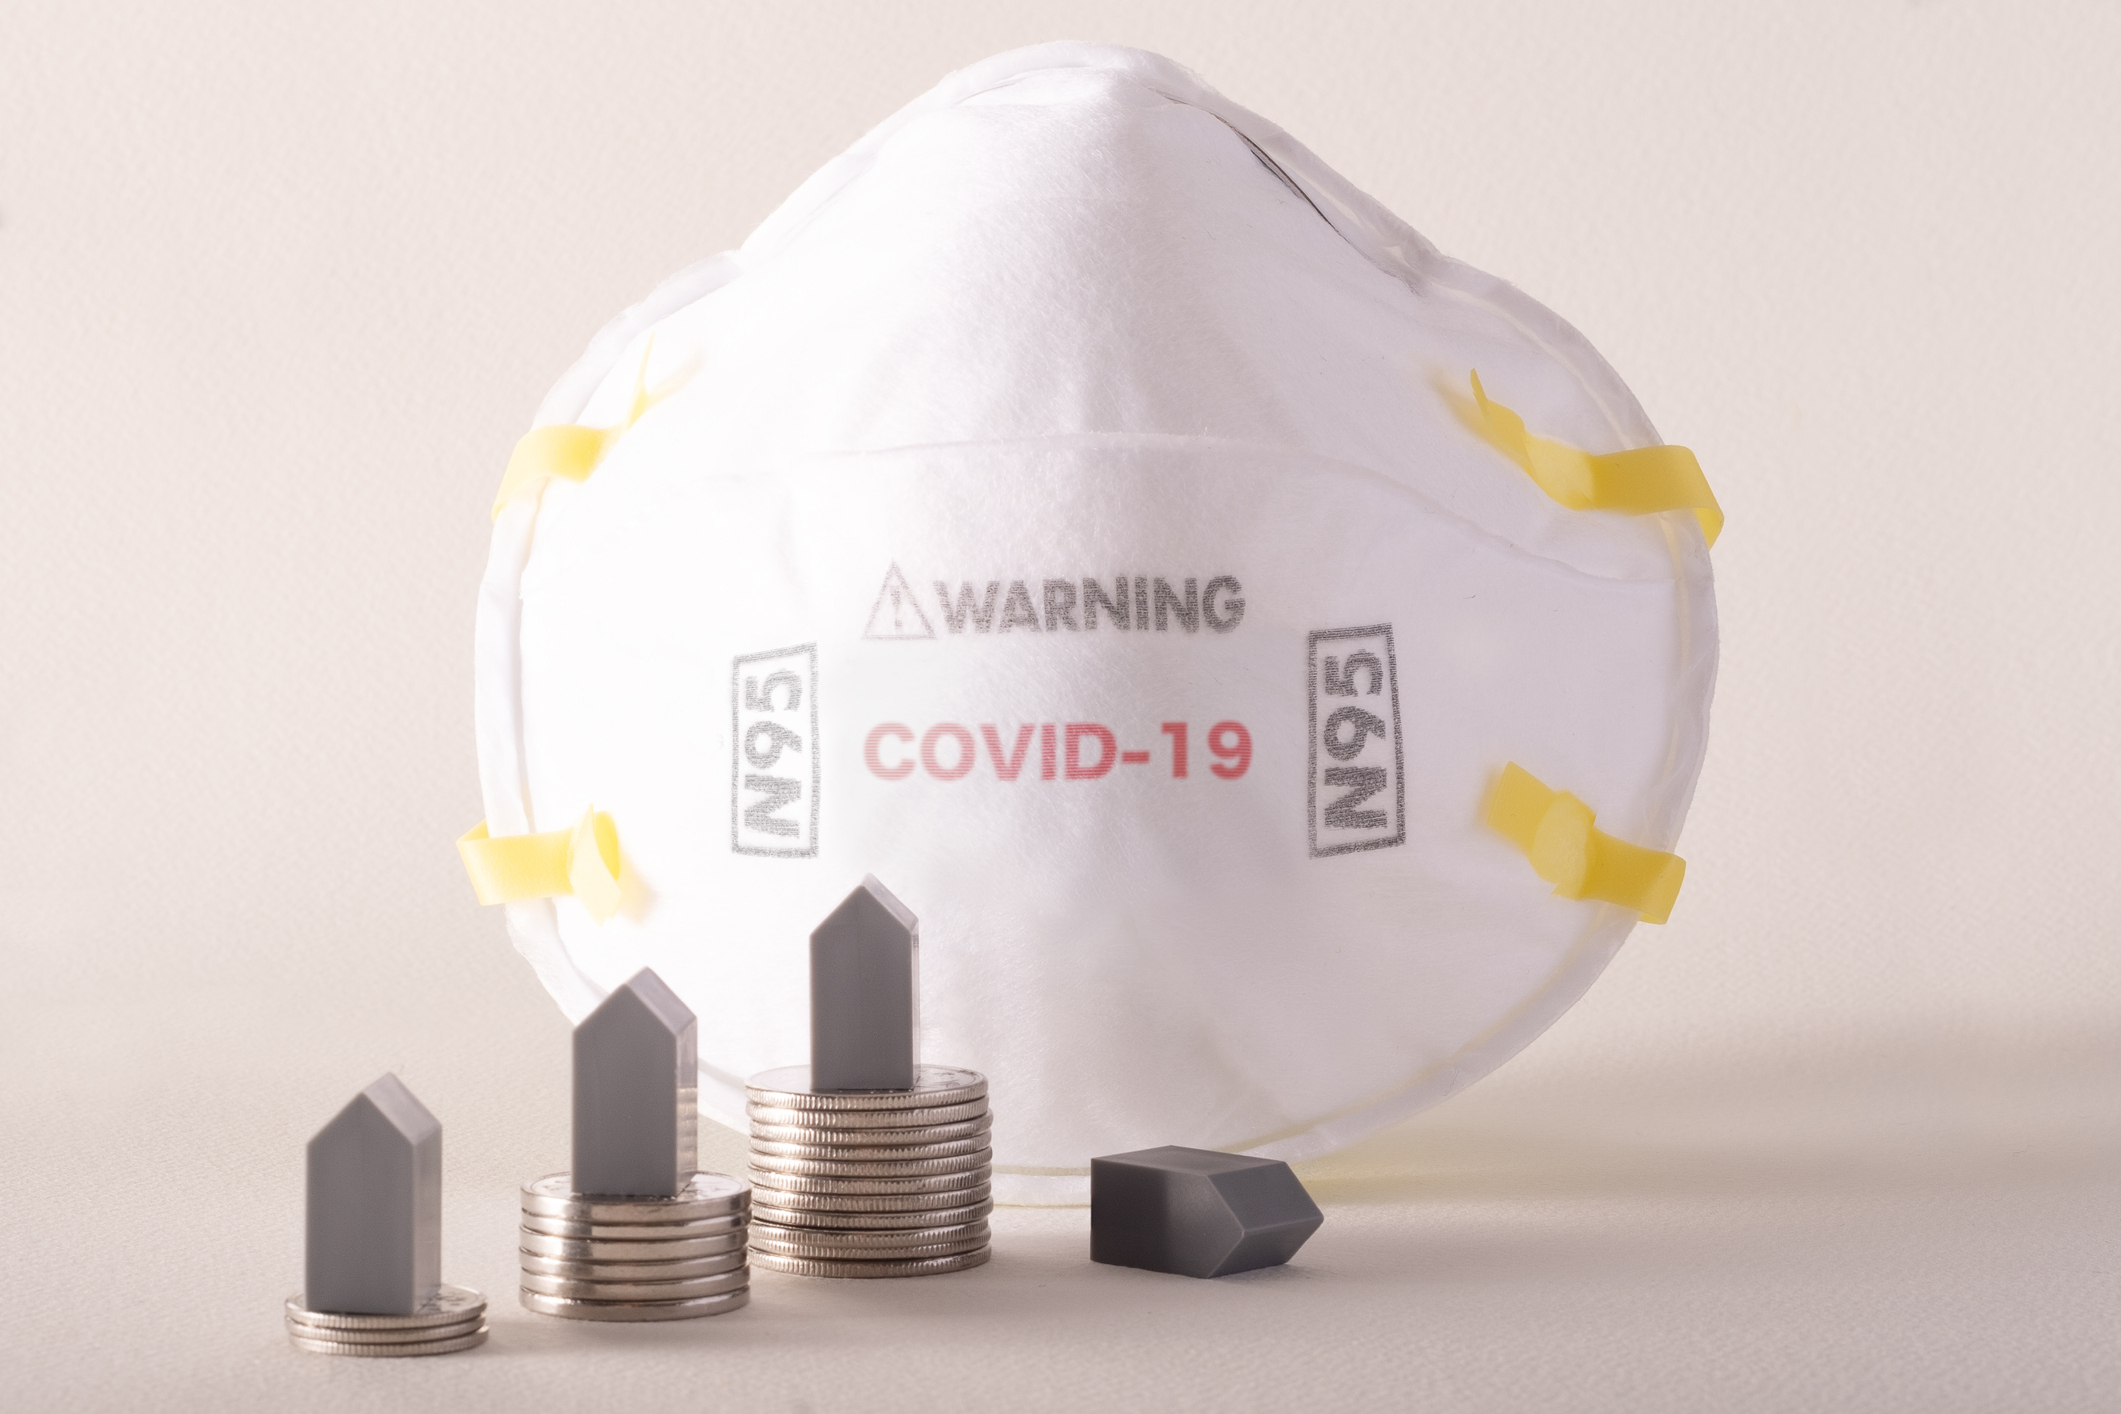 N-95 COVID-19 Face Mask and piles of coins